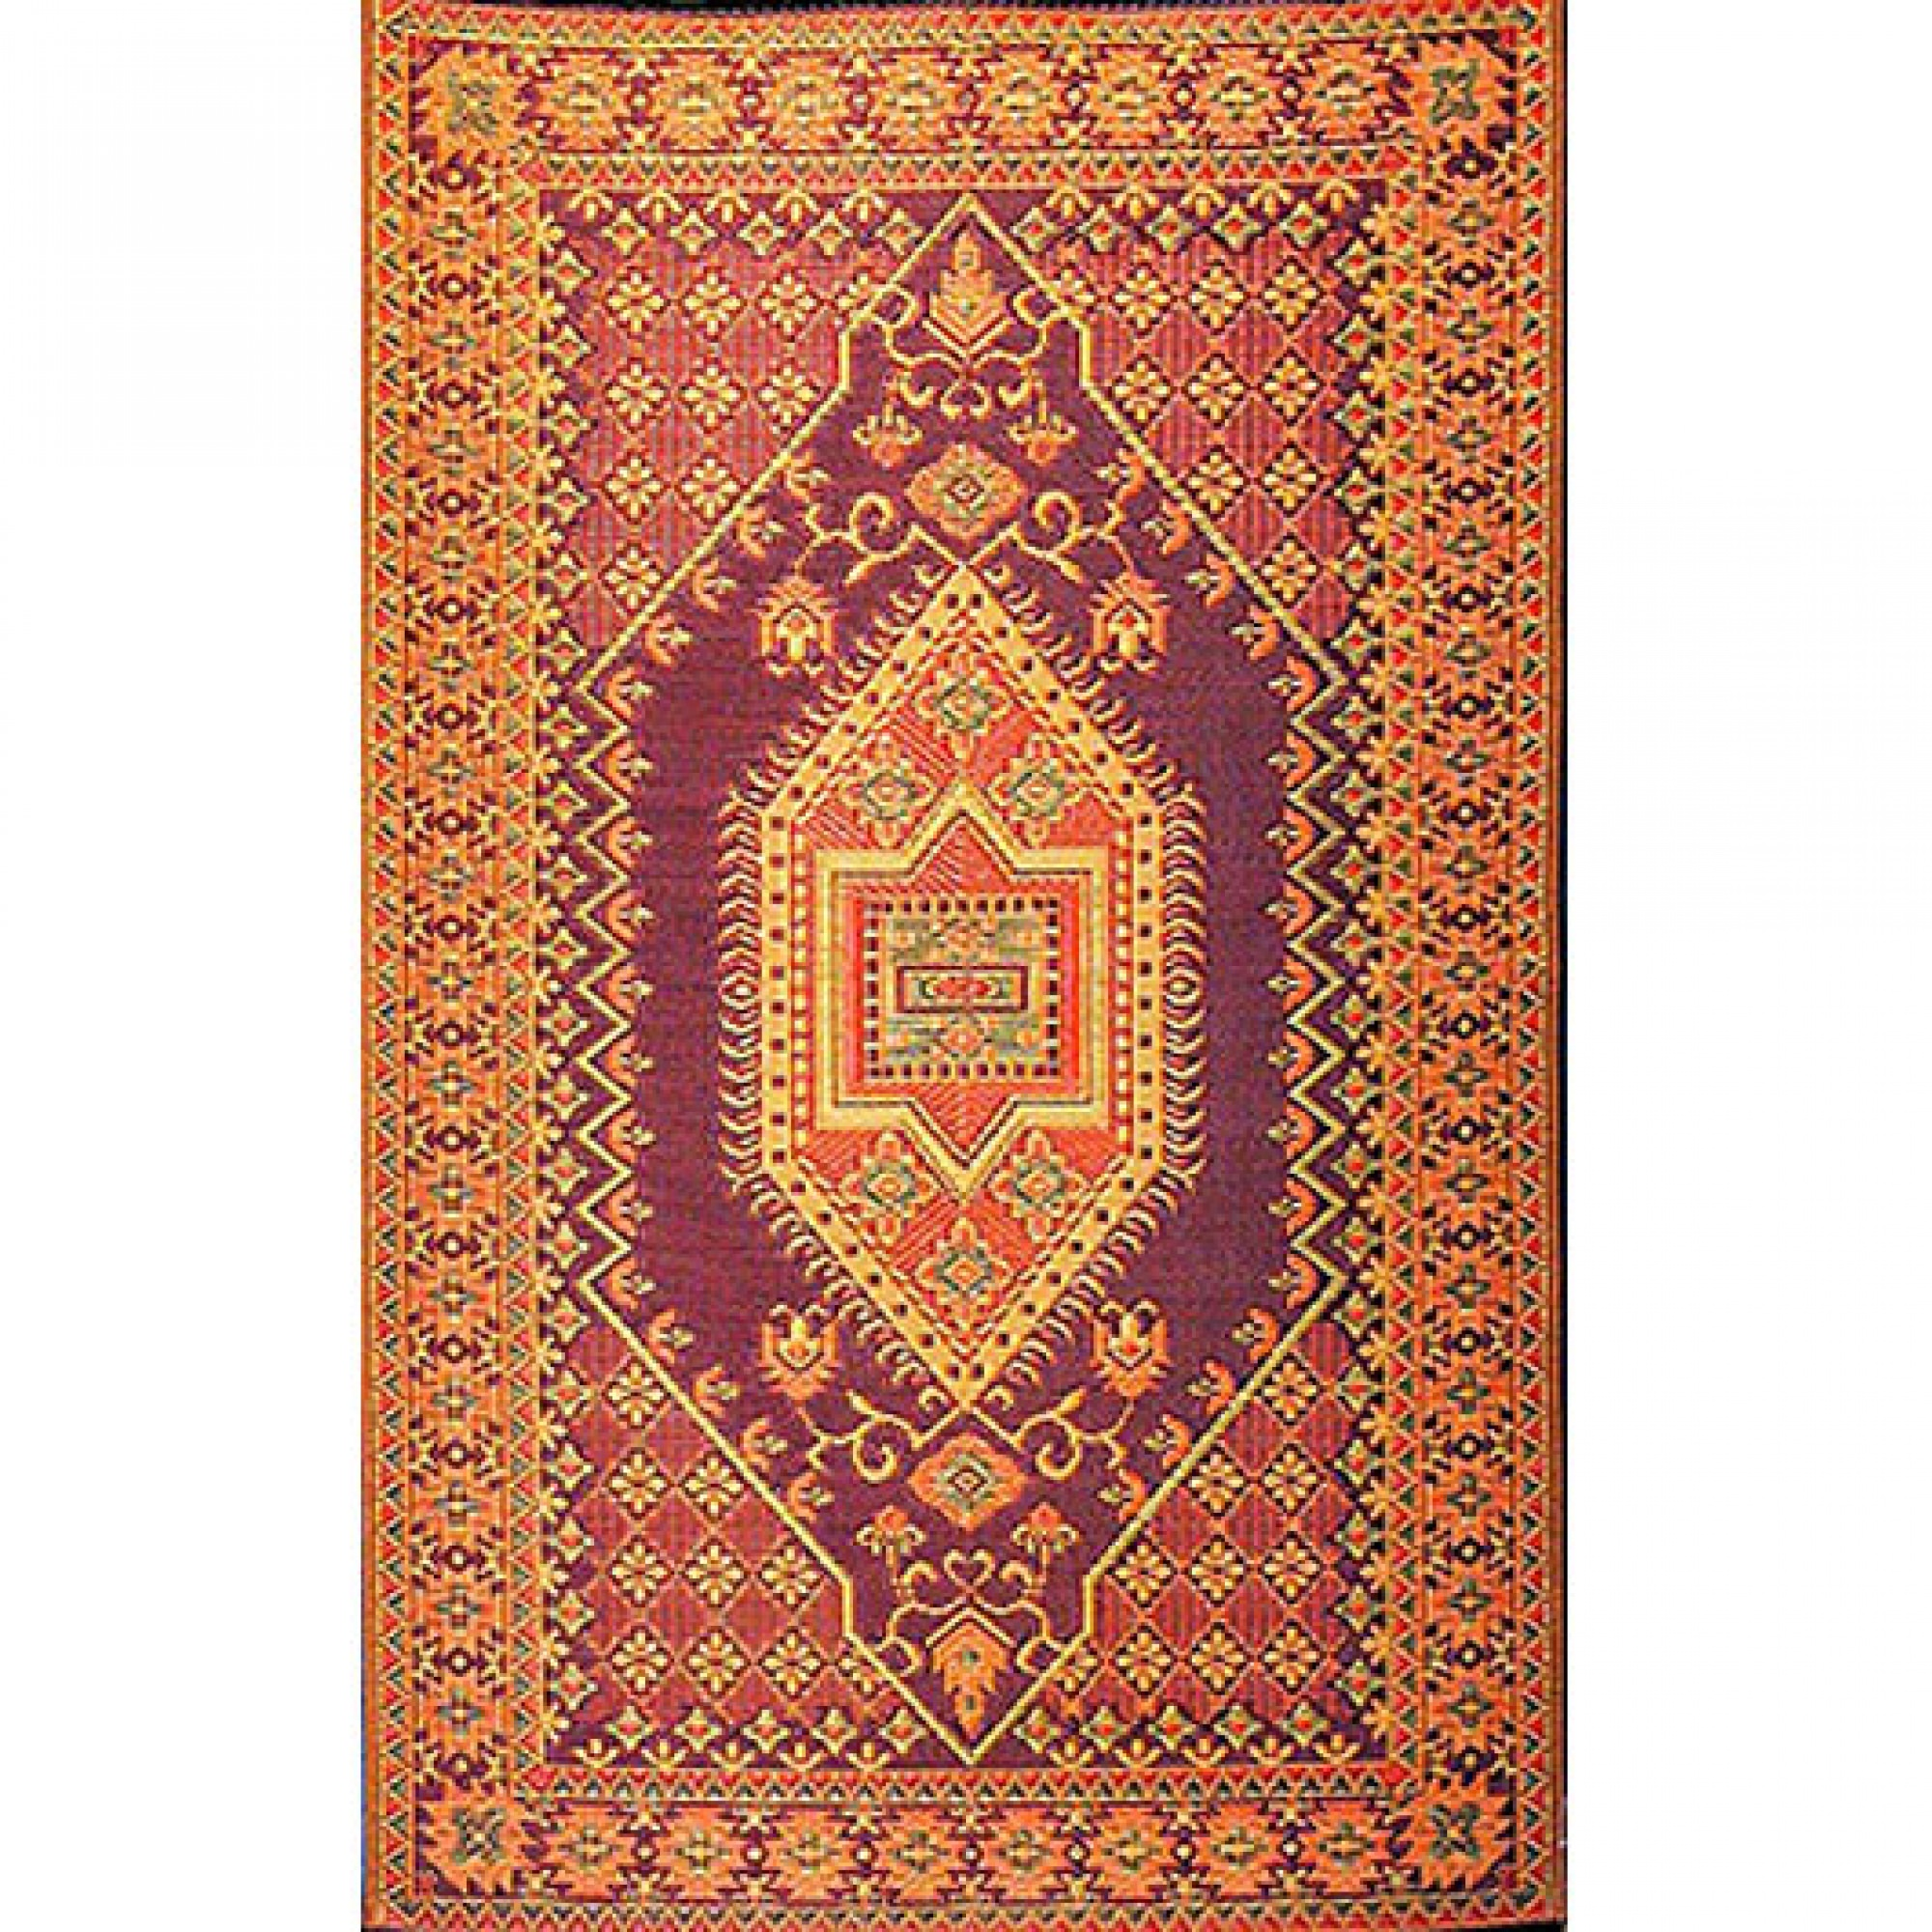 rugs of turkish modern abroad innovative january design rug monkeys a fresh lovely trendy sydney wise